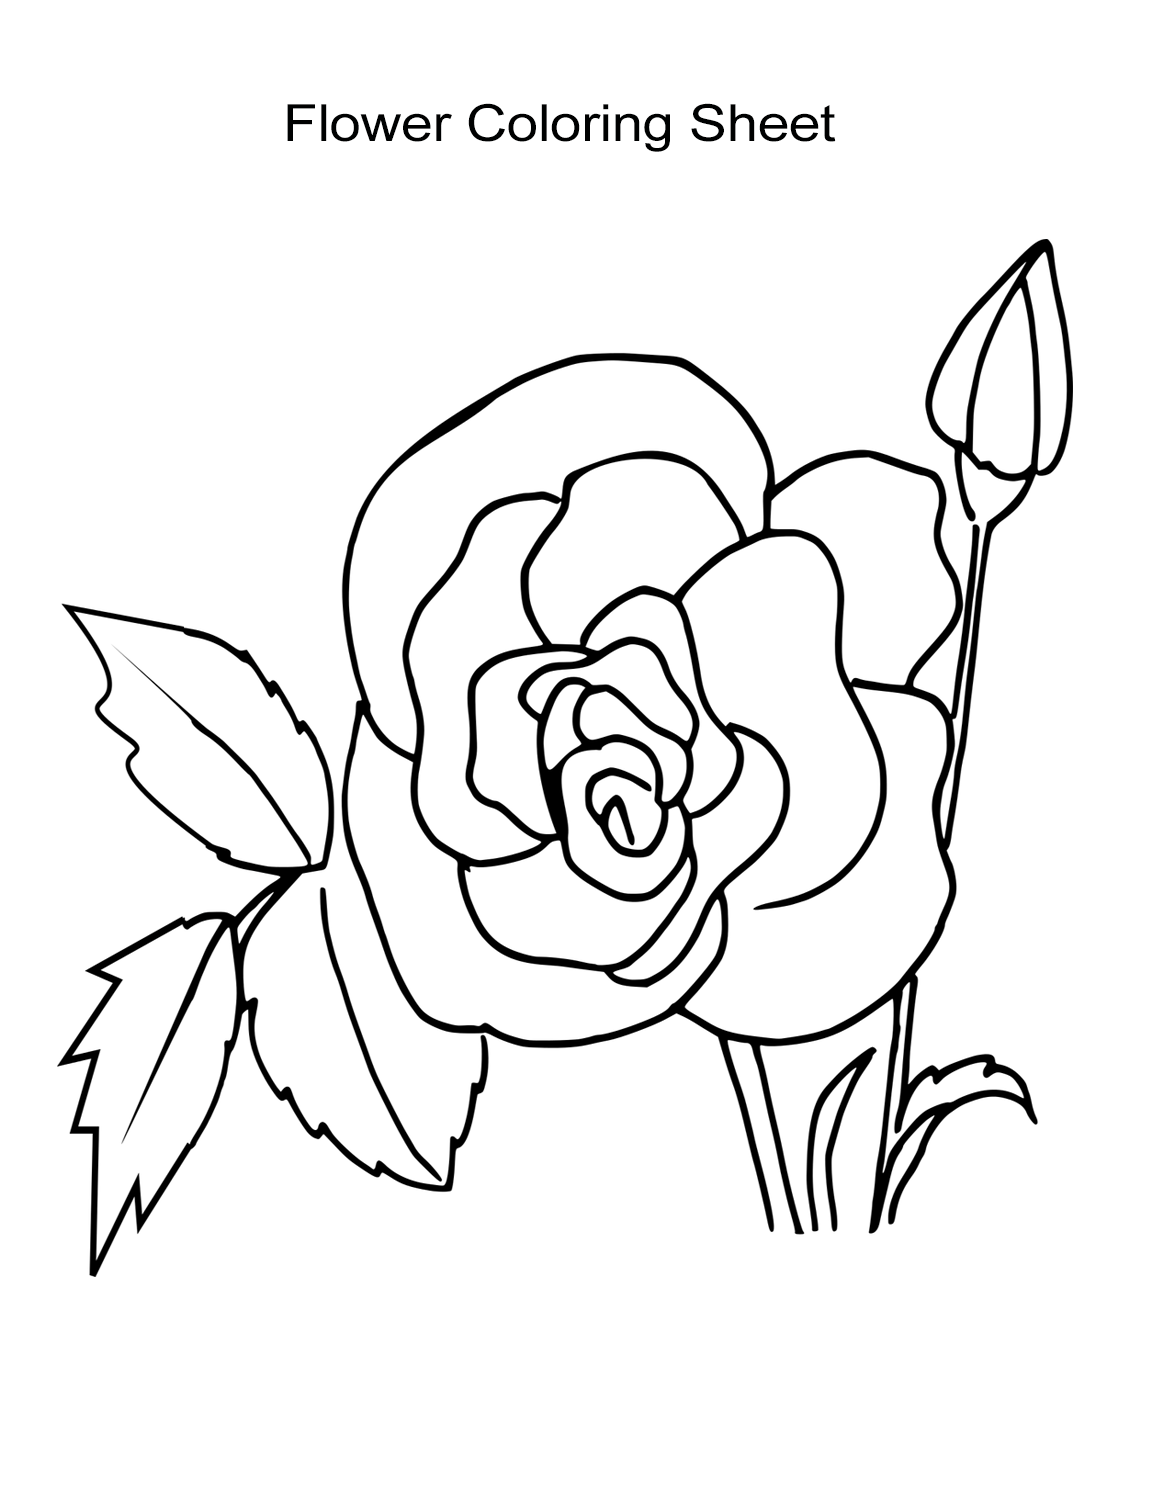 Flower Garden Coloring Pages - Coloring Home | 1505x1163